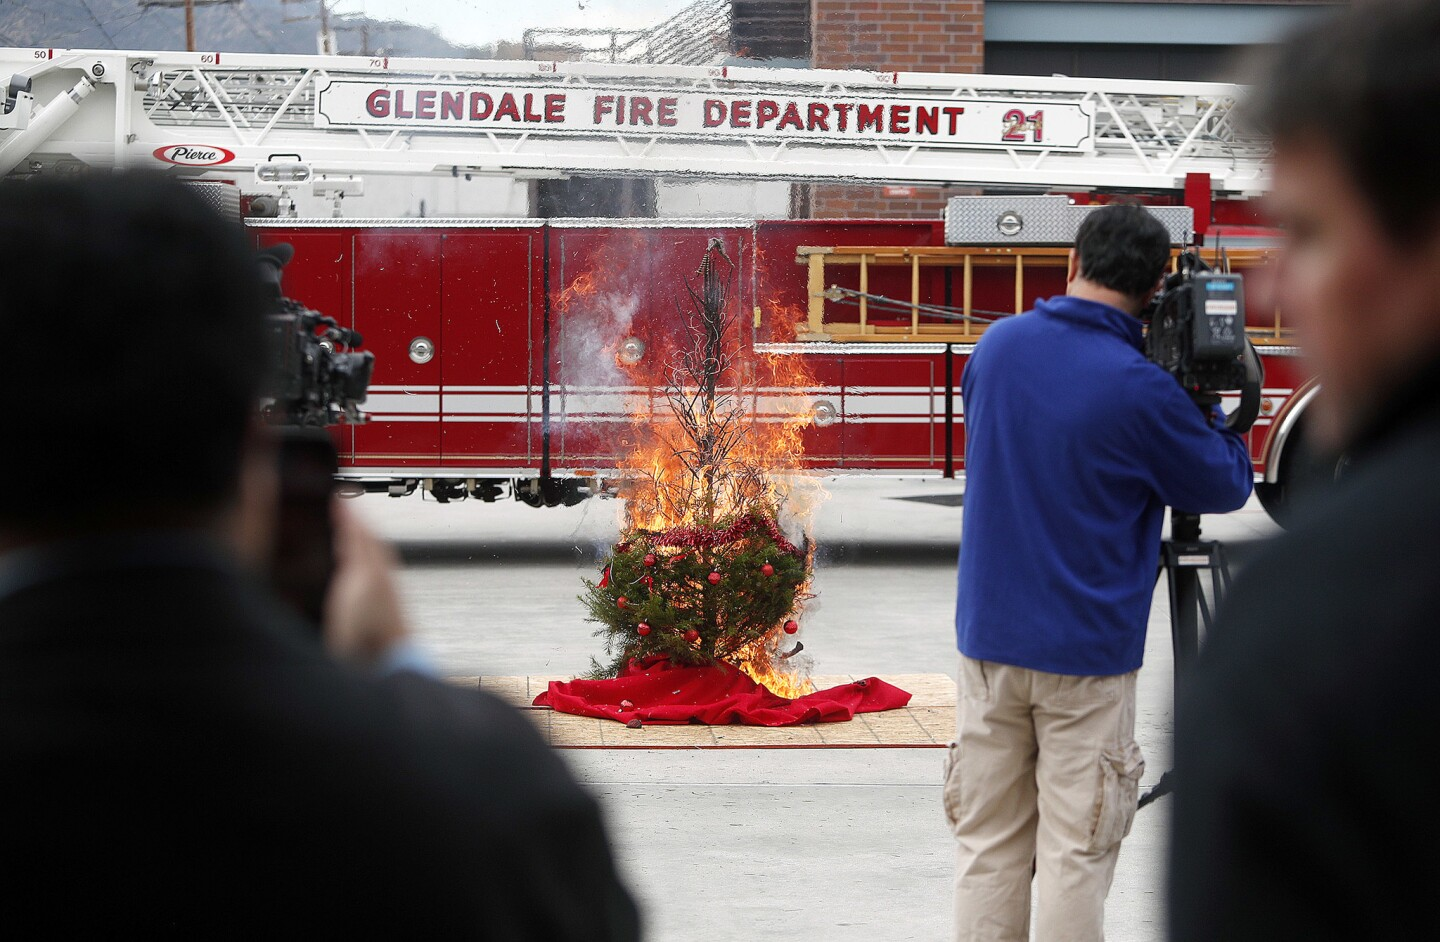 Photo Gallery: Glendale Fire Department demonstrates hazards around home during holidays